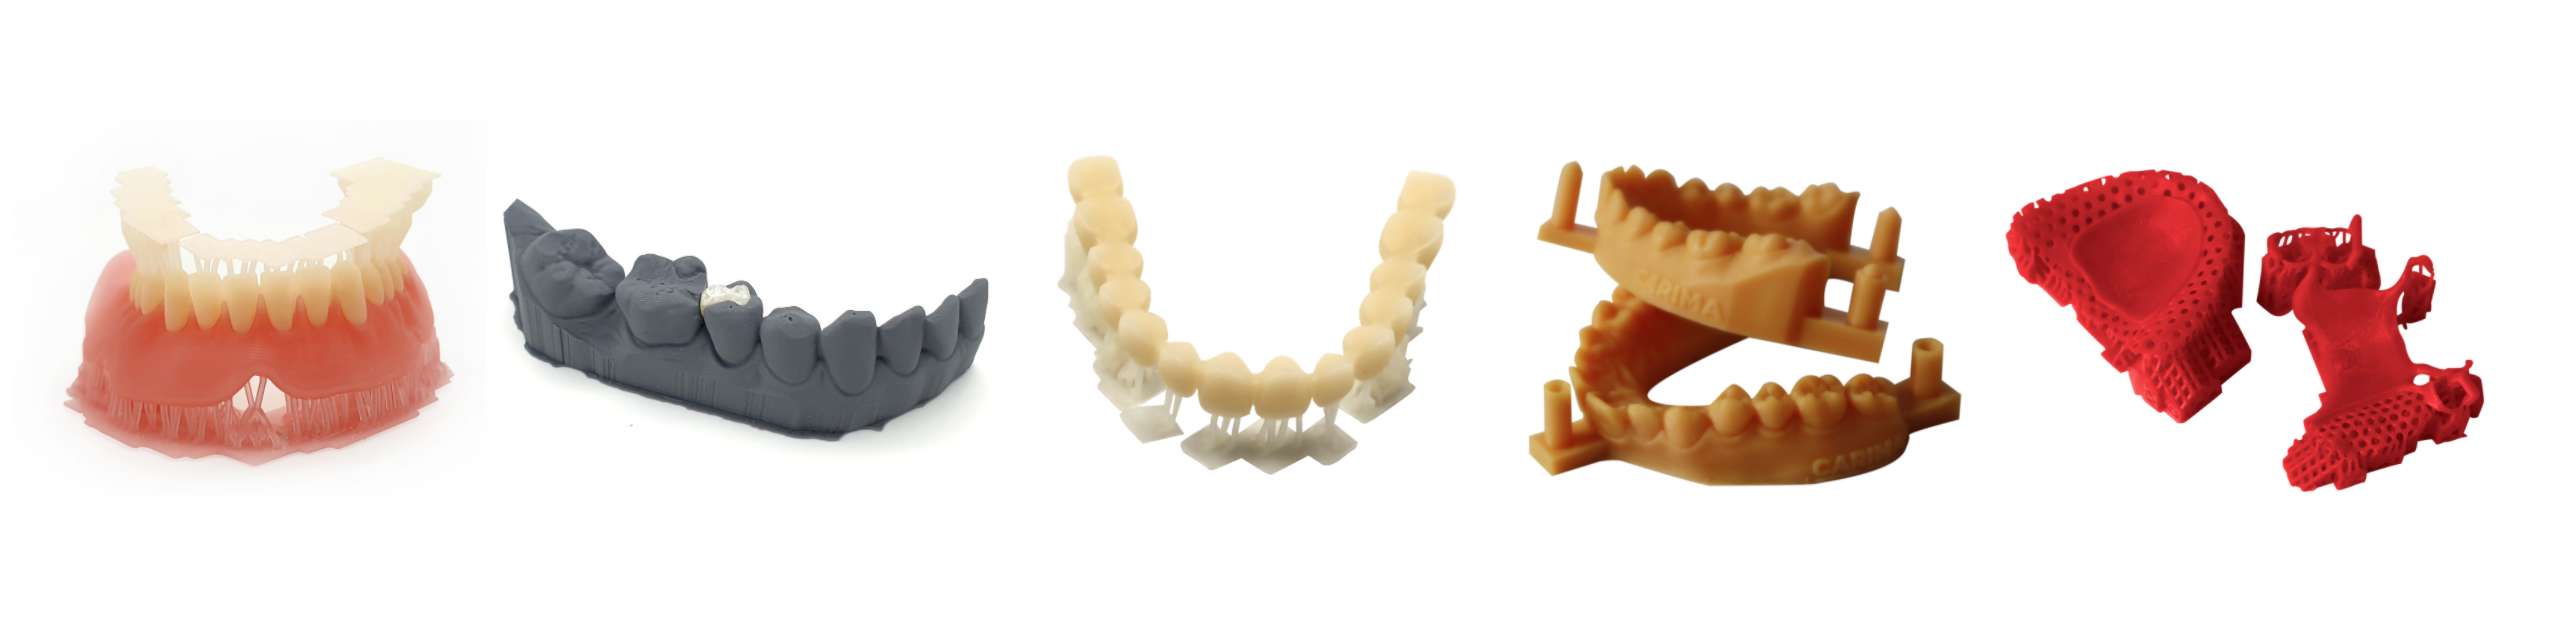 Carima S Imd Dental 3d Printing Solution For Same Day Digital Dentistry Workflows Aniwaa